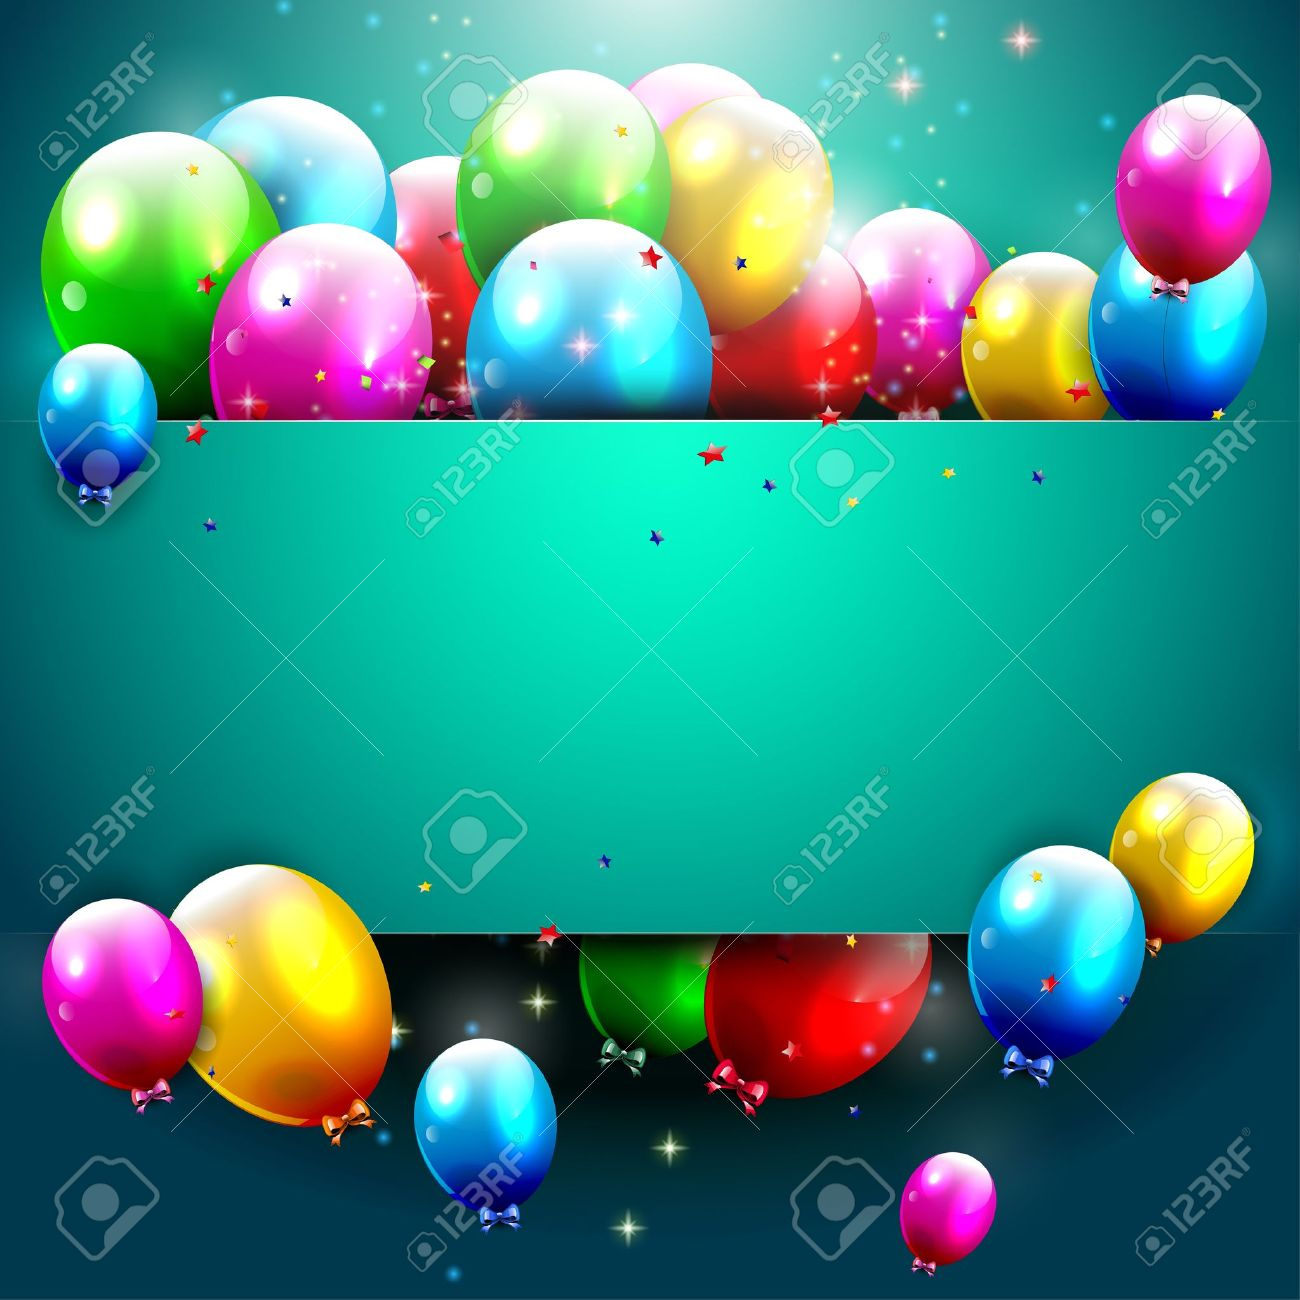 Luxury birthday background with colorful balloons and copyspace Stock Vector - 20900868